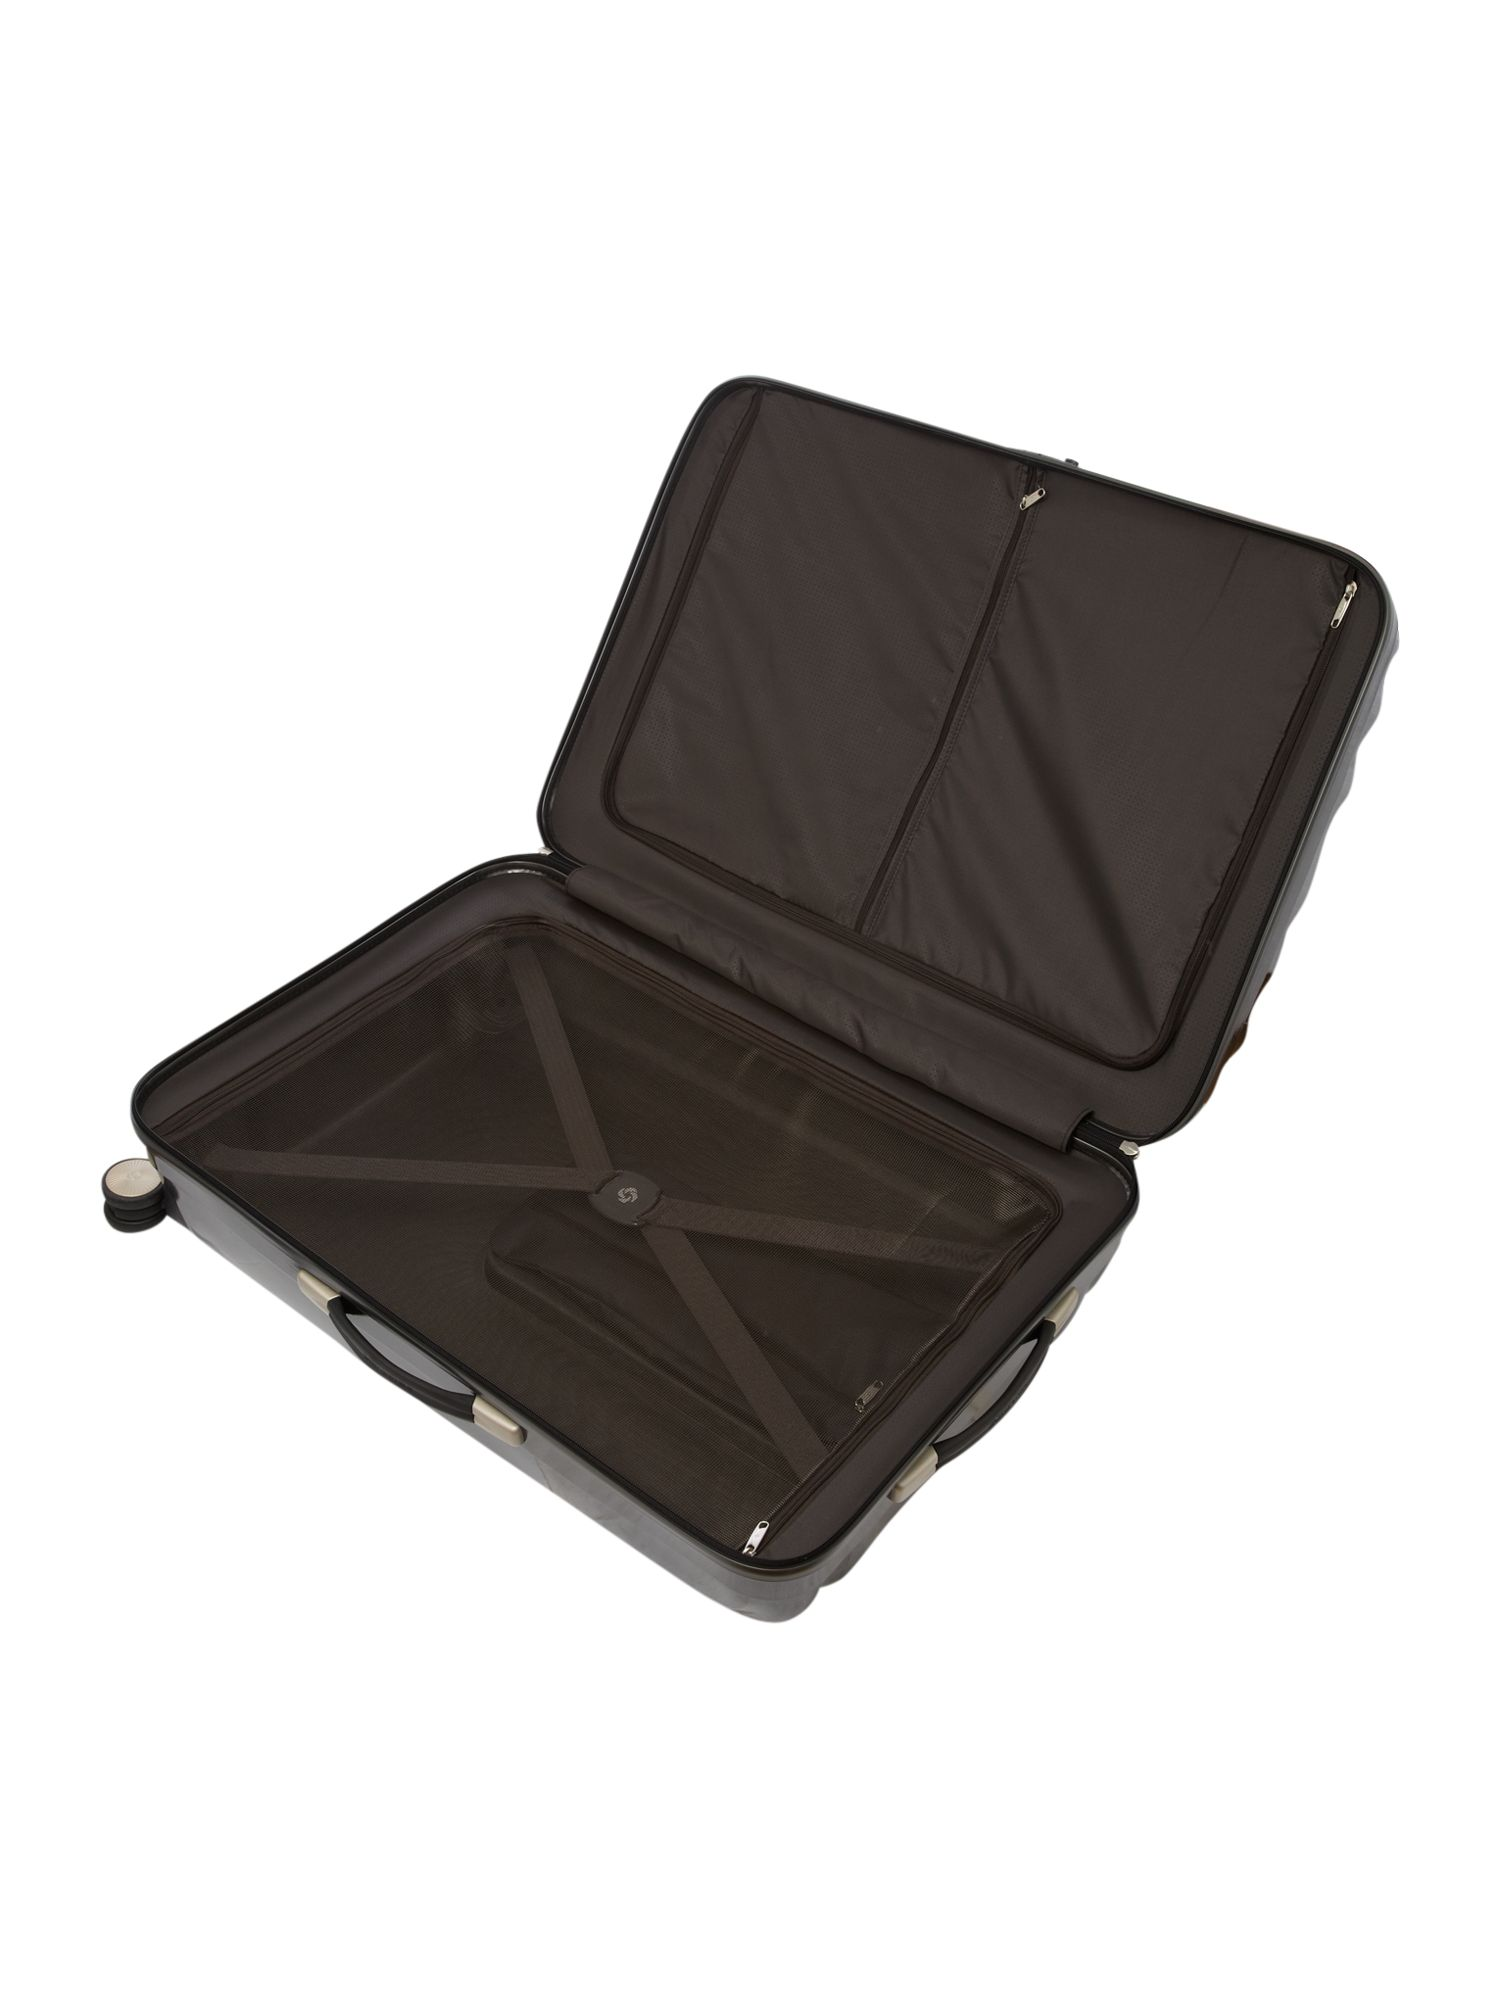 Cubelite graphite 82cm 4 wheel case